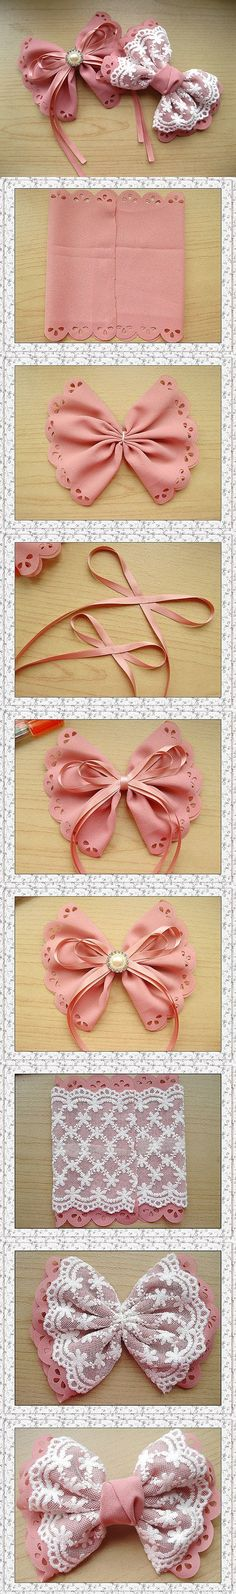 DIY Pink Ribbon Shaped Bow